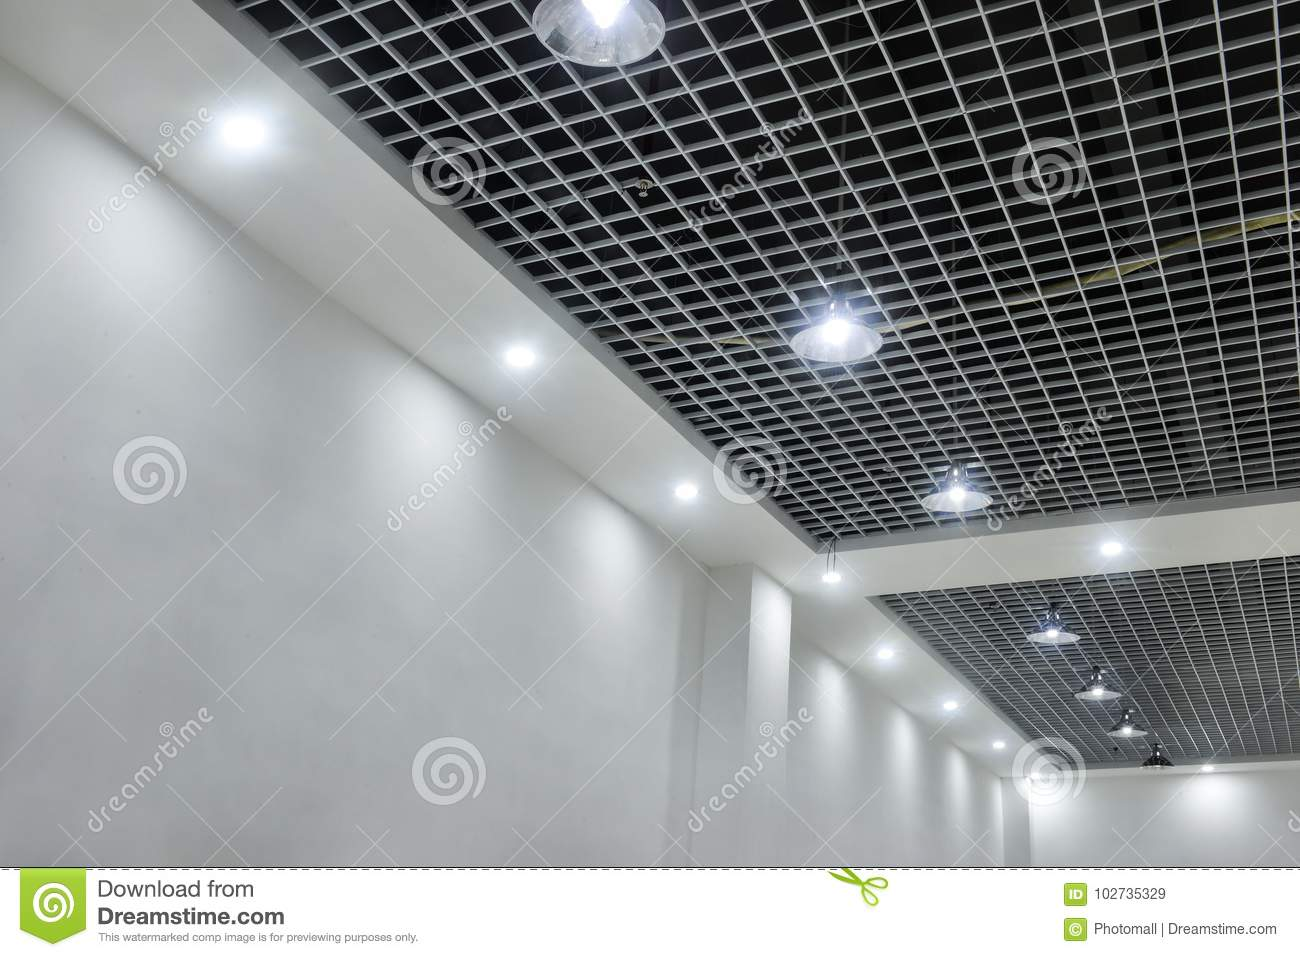 Led ceiling lights on modern commercial building suspended ceiling download led ceiling lights on modern commercial building suspended ceiling stock image image of bokeh aloadofball Gallery